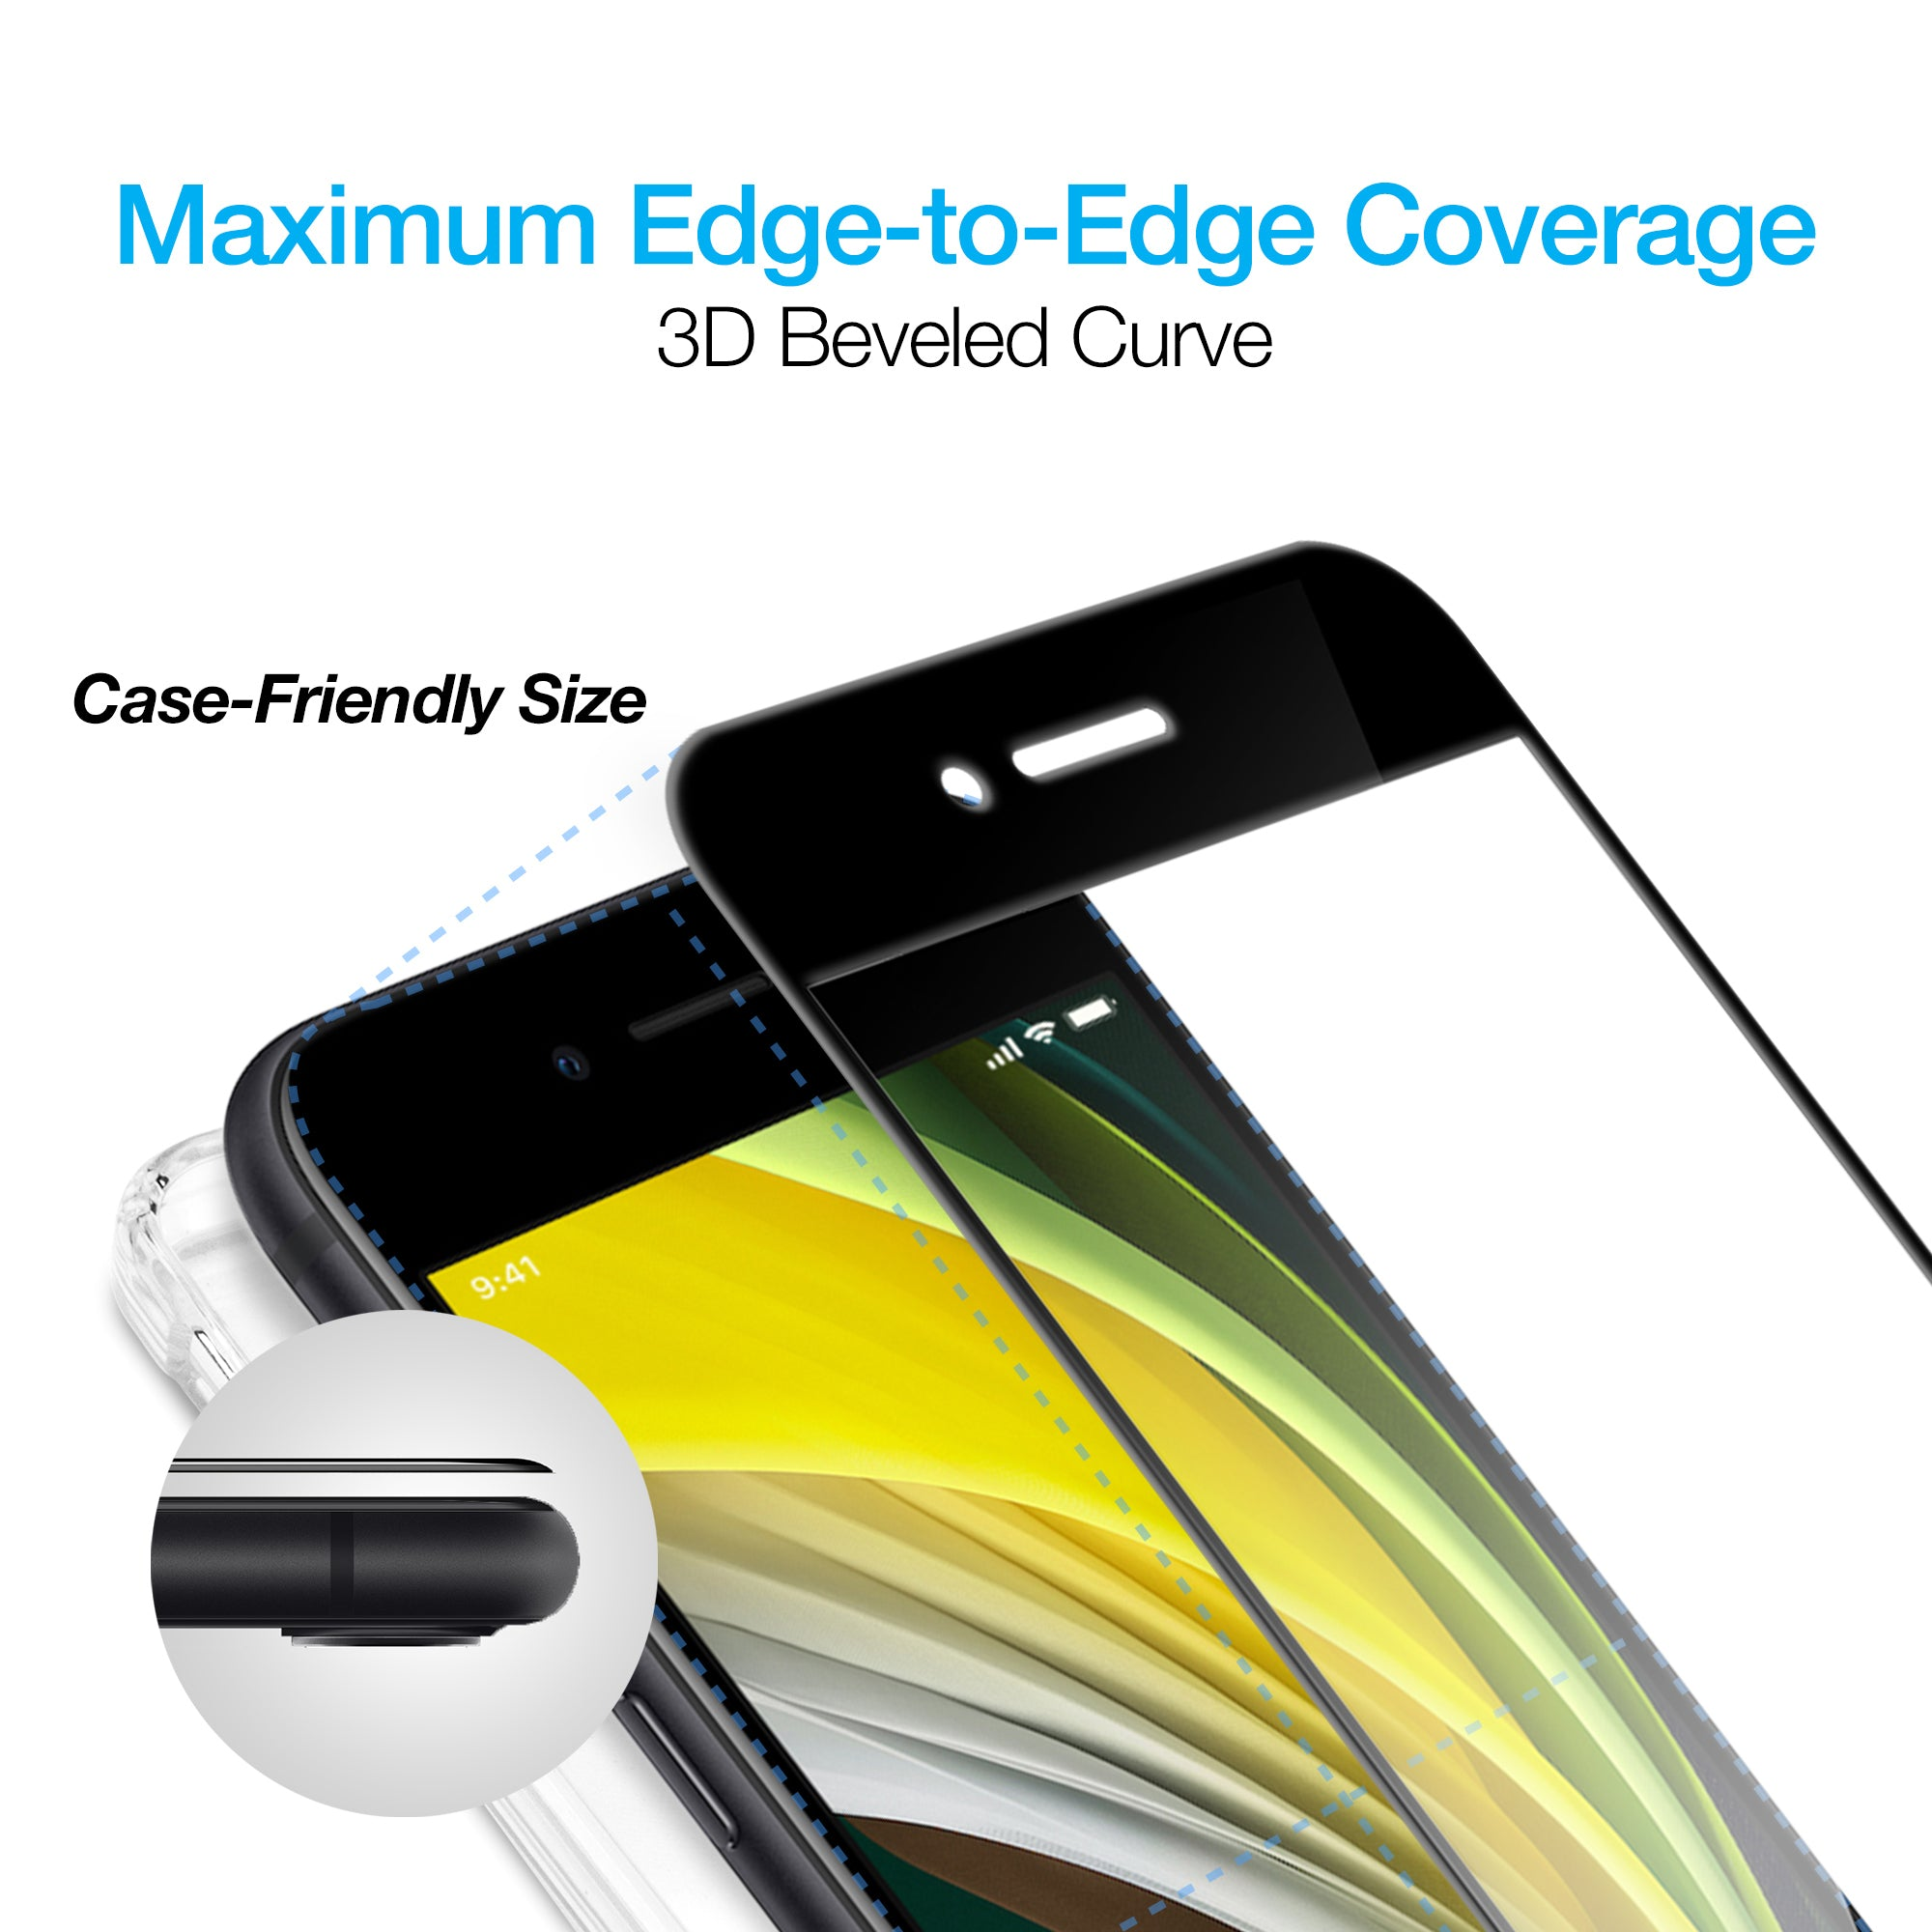 IntelliShield HD Tempered Glass with 3D Edge for new iPhone SE